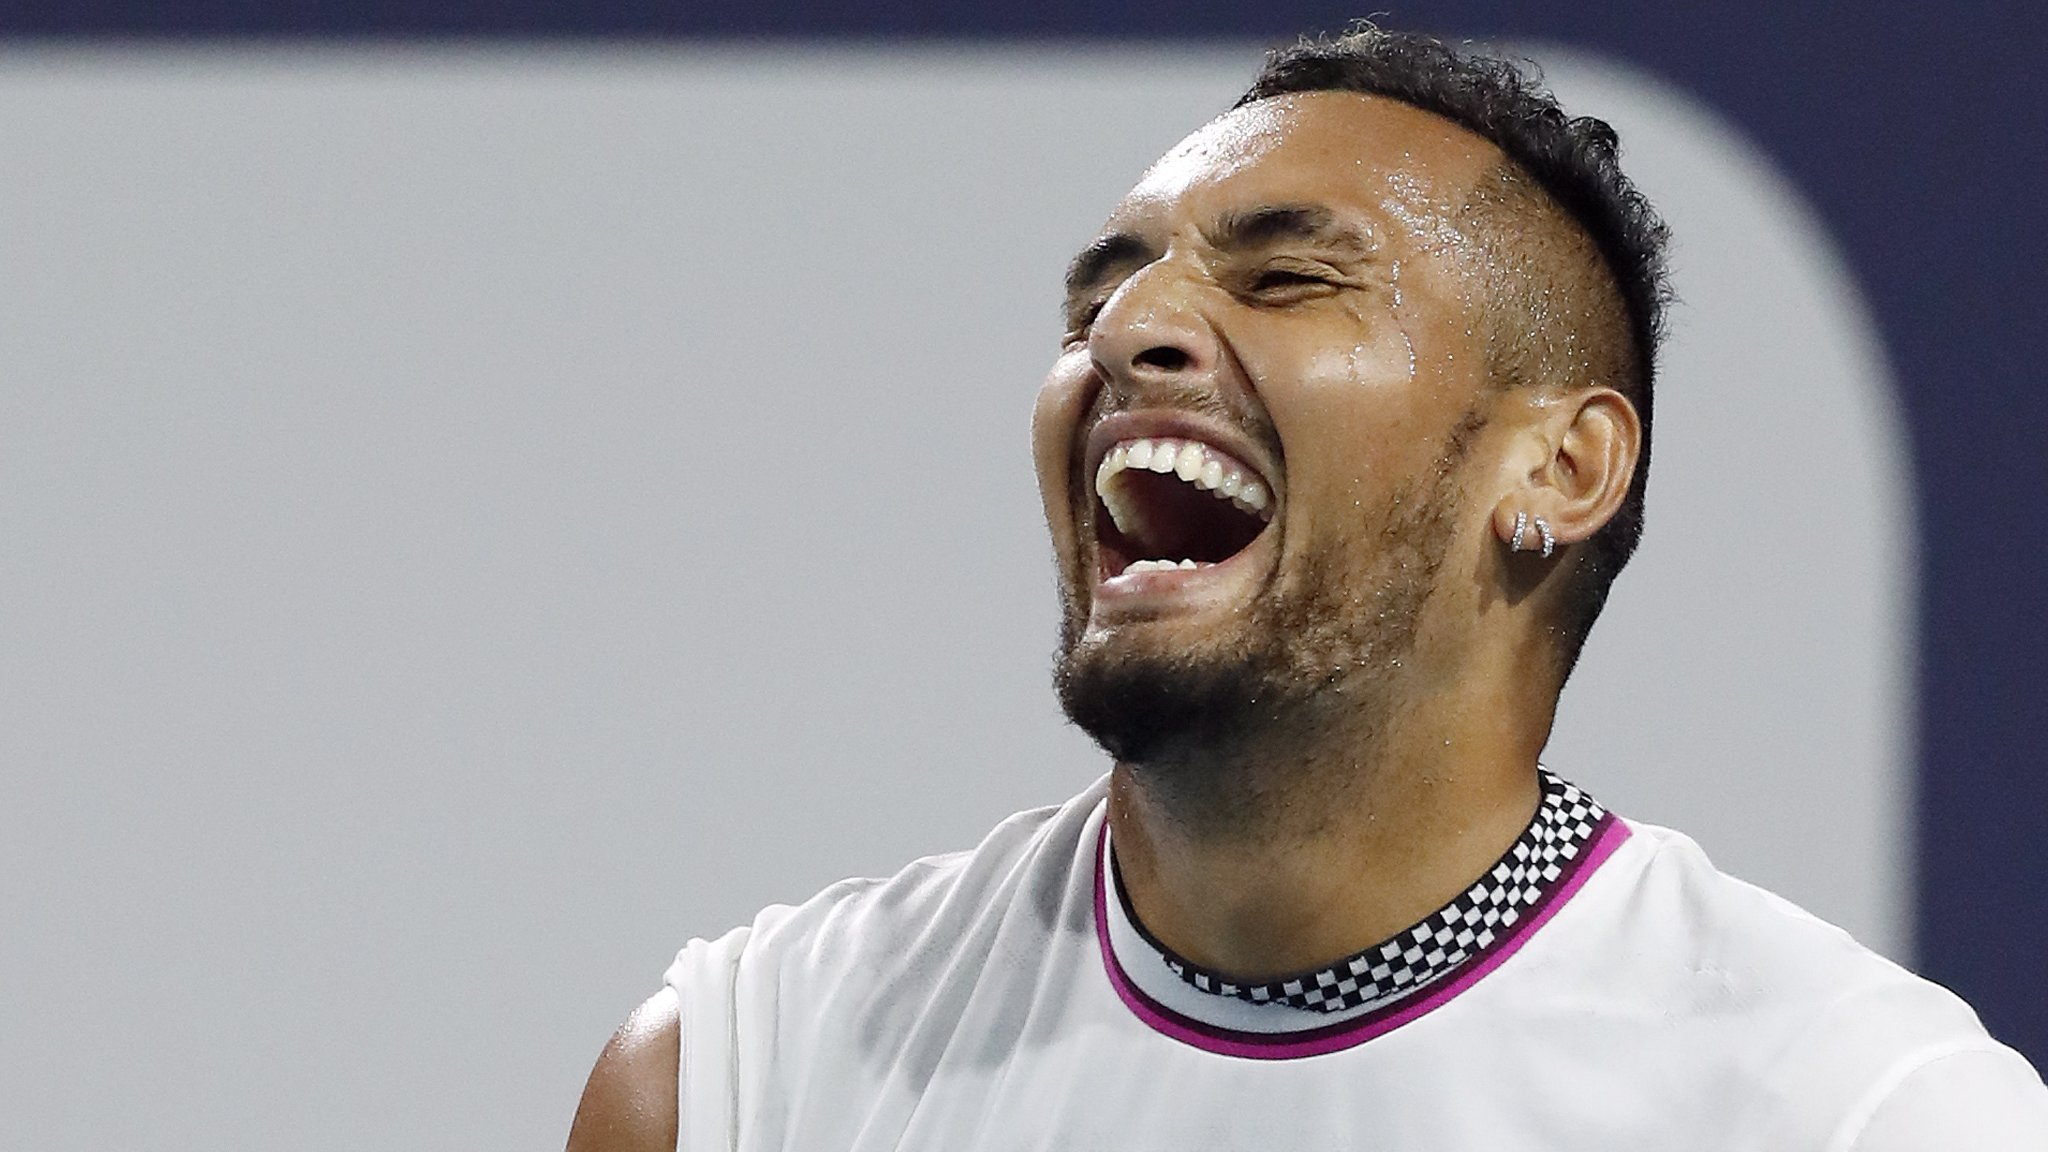 Kyrgios 'a genius', says Judy Murray after Australian twice served underarm in Miami Open win